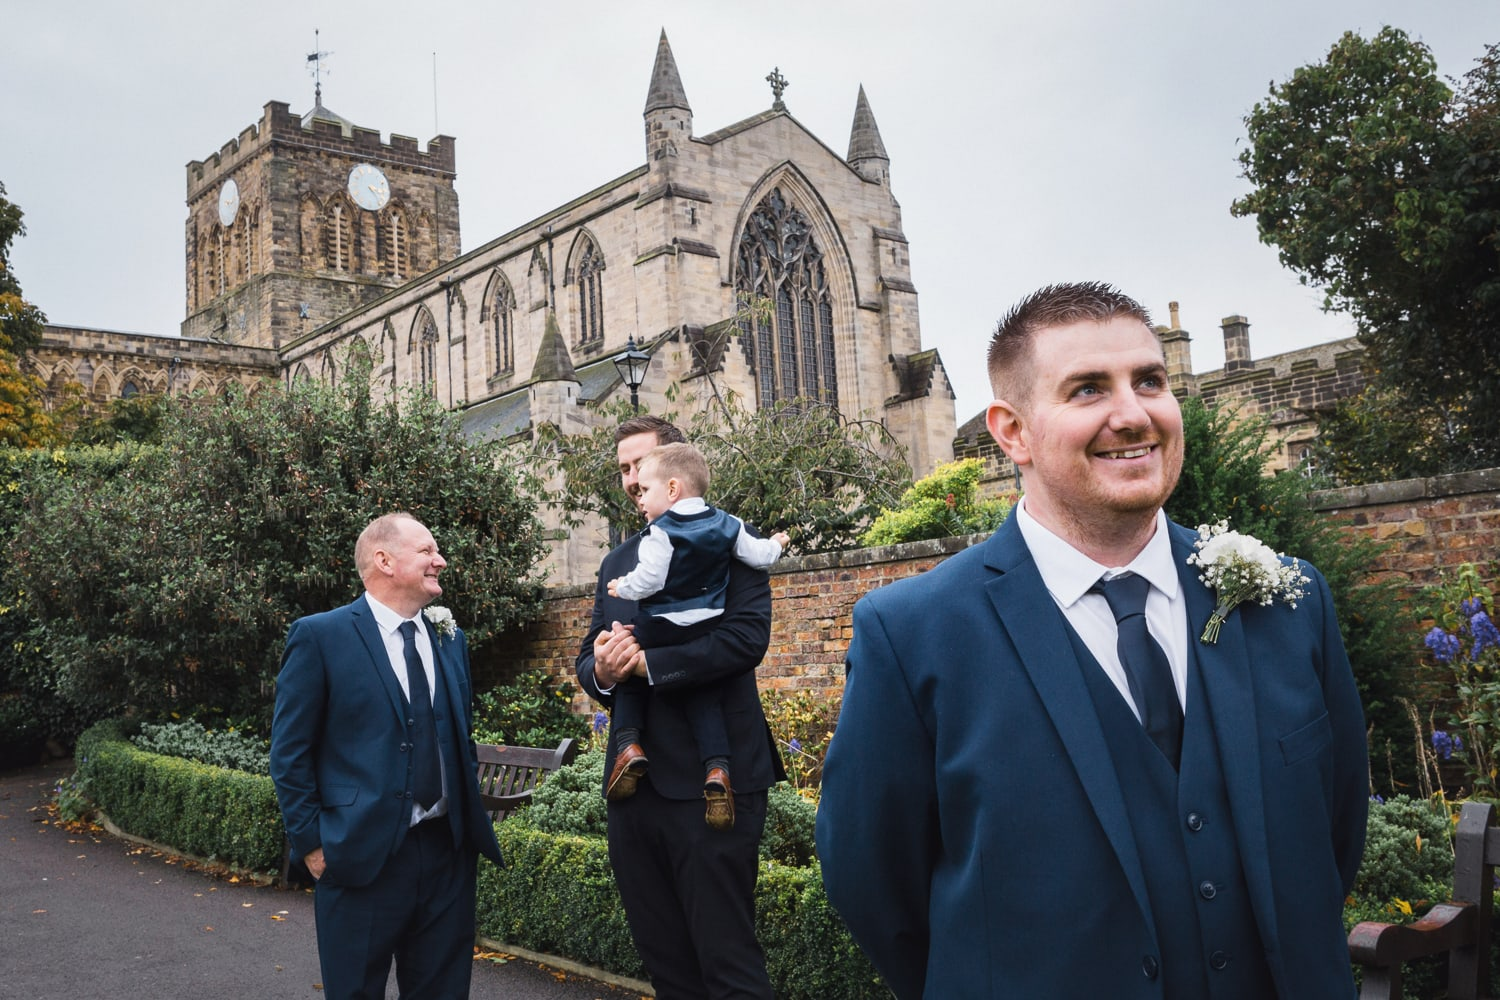 Hexham Abbey Wedding groomsmen